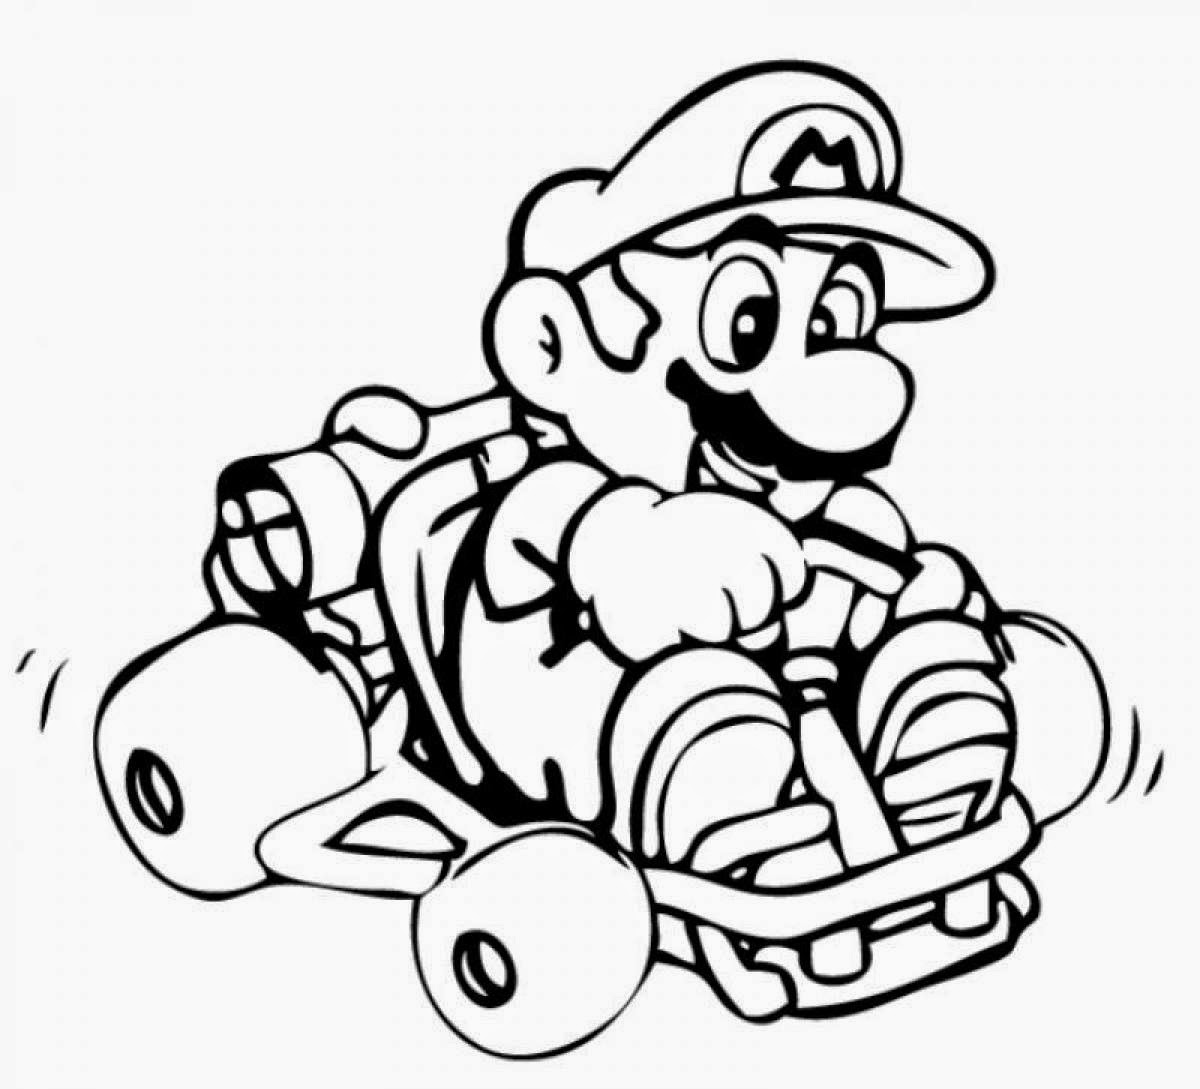 All Mario Characters Coloring Pages At Getdrawings Com Free For